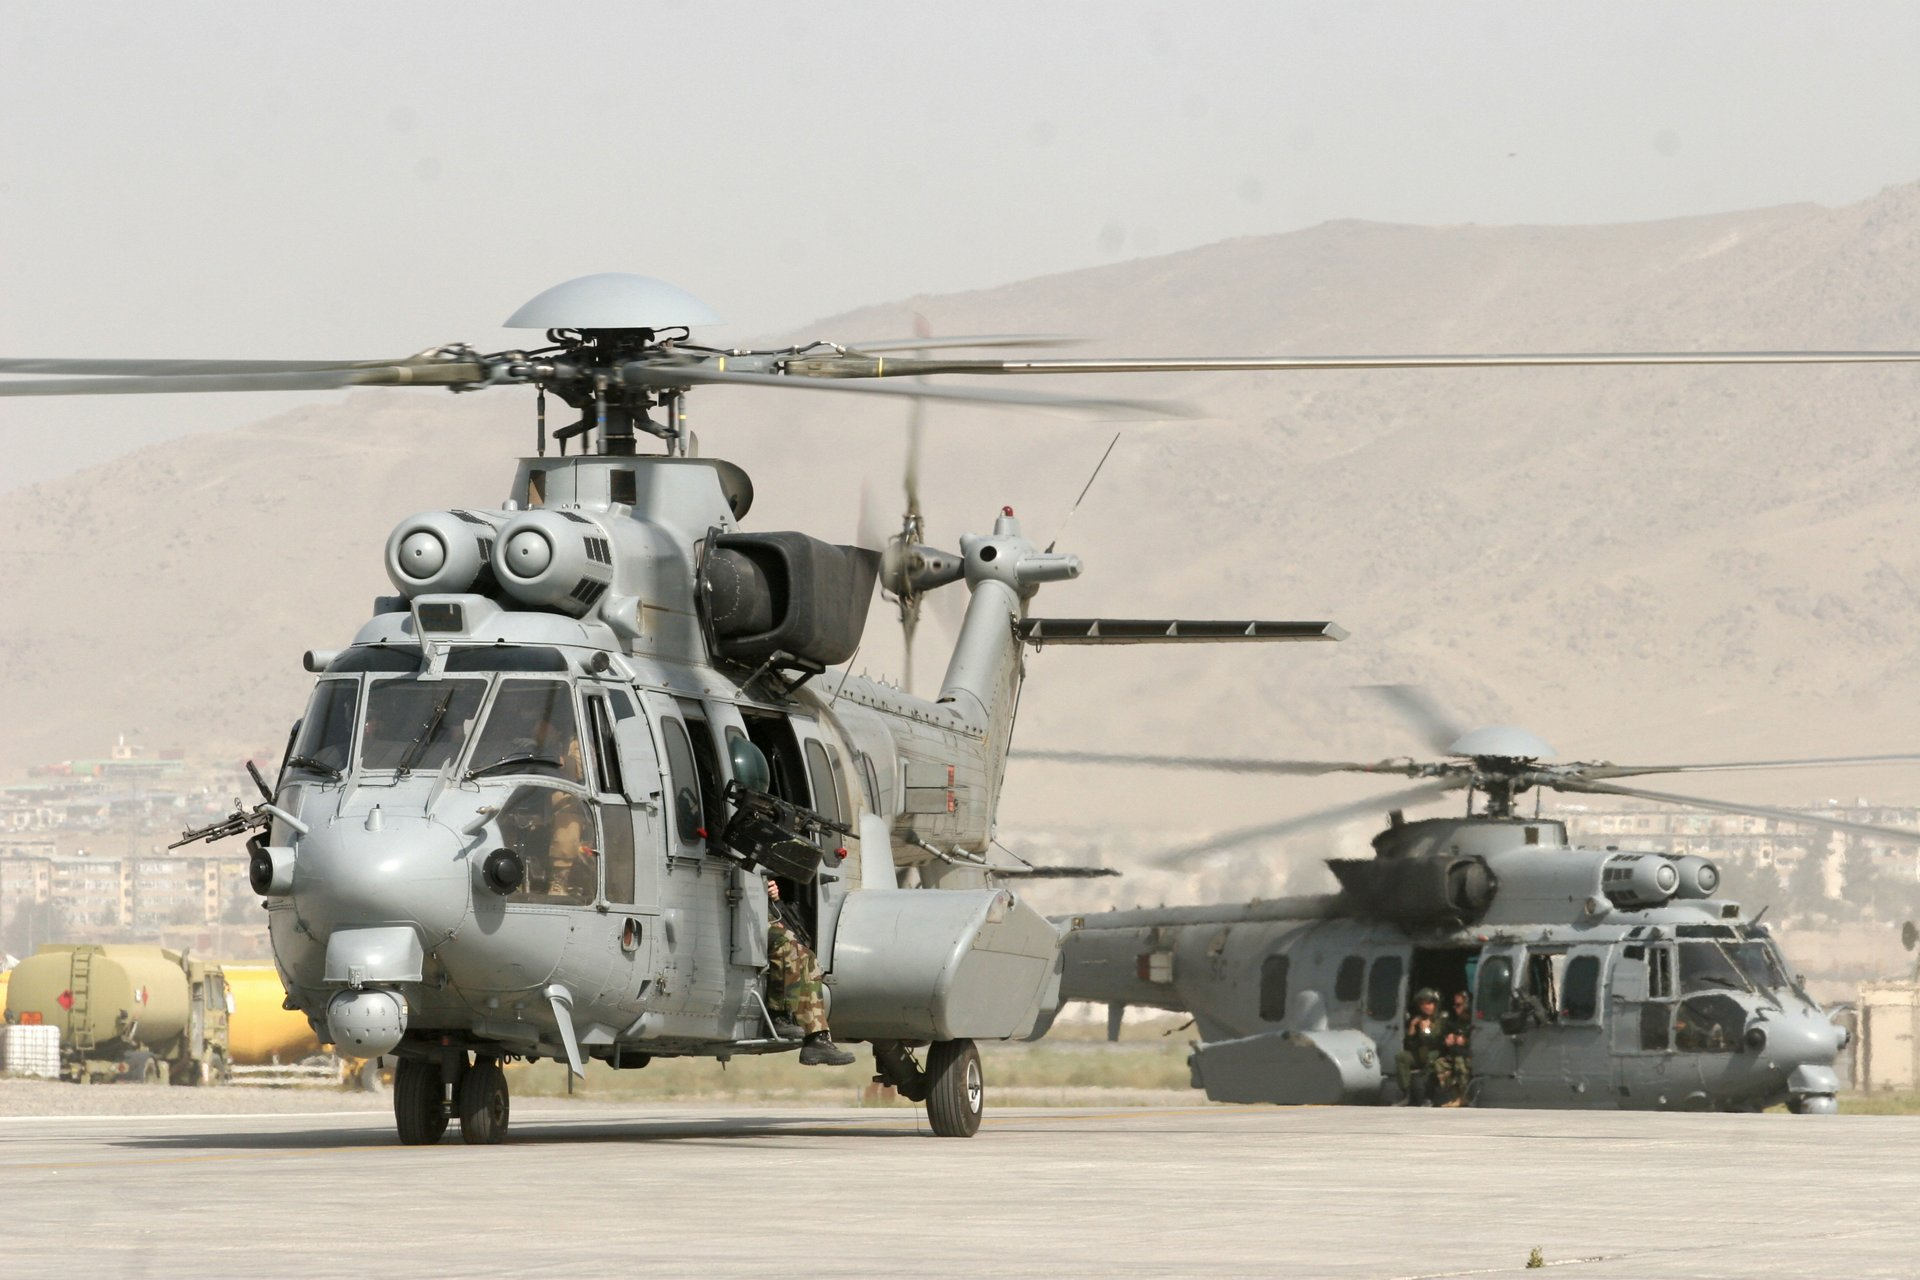 A pair of Airbus H225M military helicopters on the ground with their main and tail rotor systems turning.